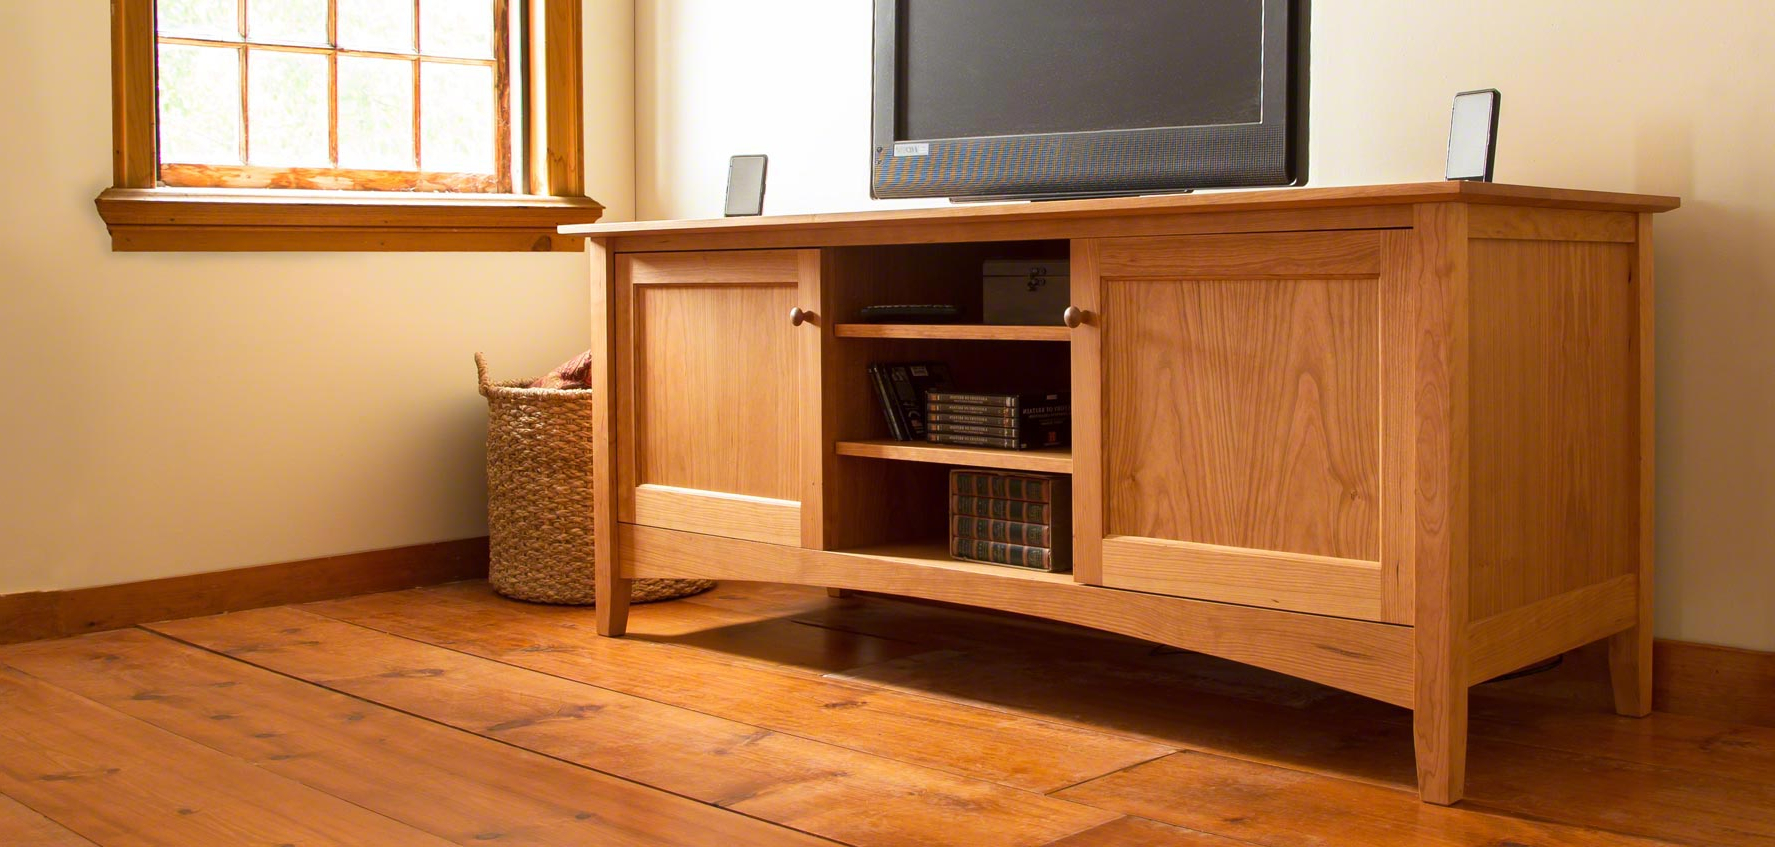 Handcrafted Wood Tv Stands & Media Consoles – Vermont Woods Studios Intended For Preferred Maple Wood Tv Stands (Gallery 1 of 20)